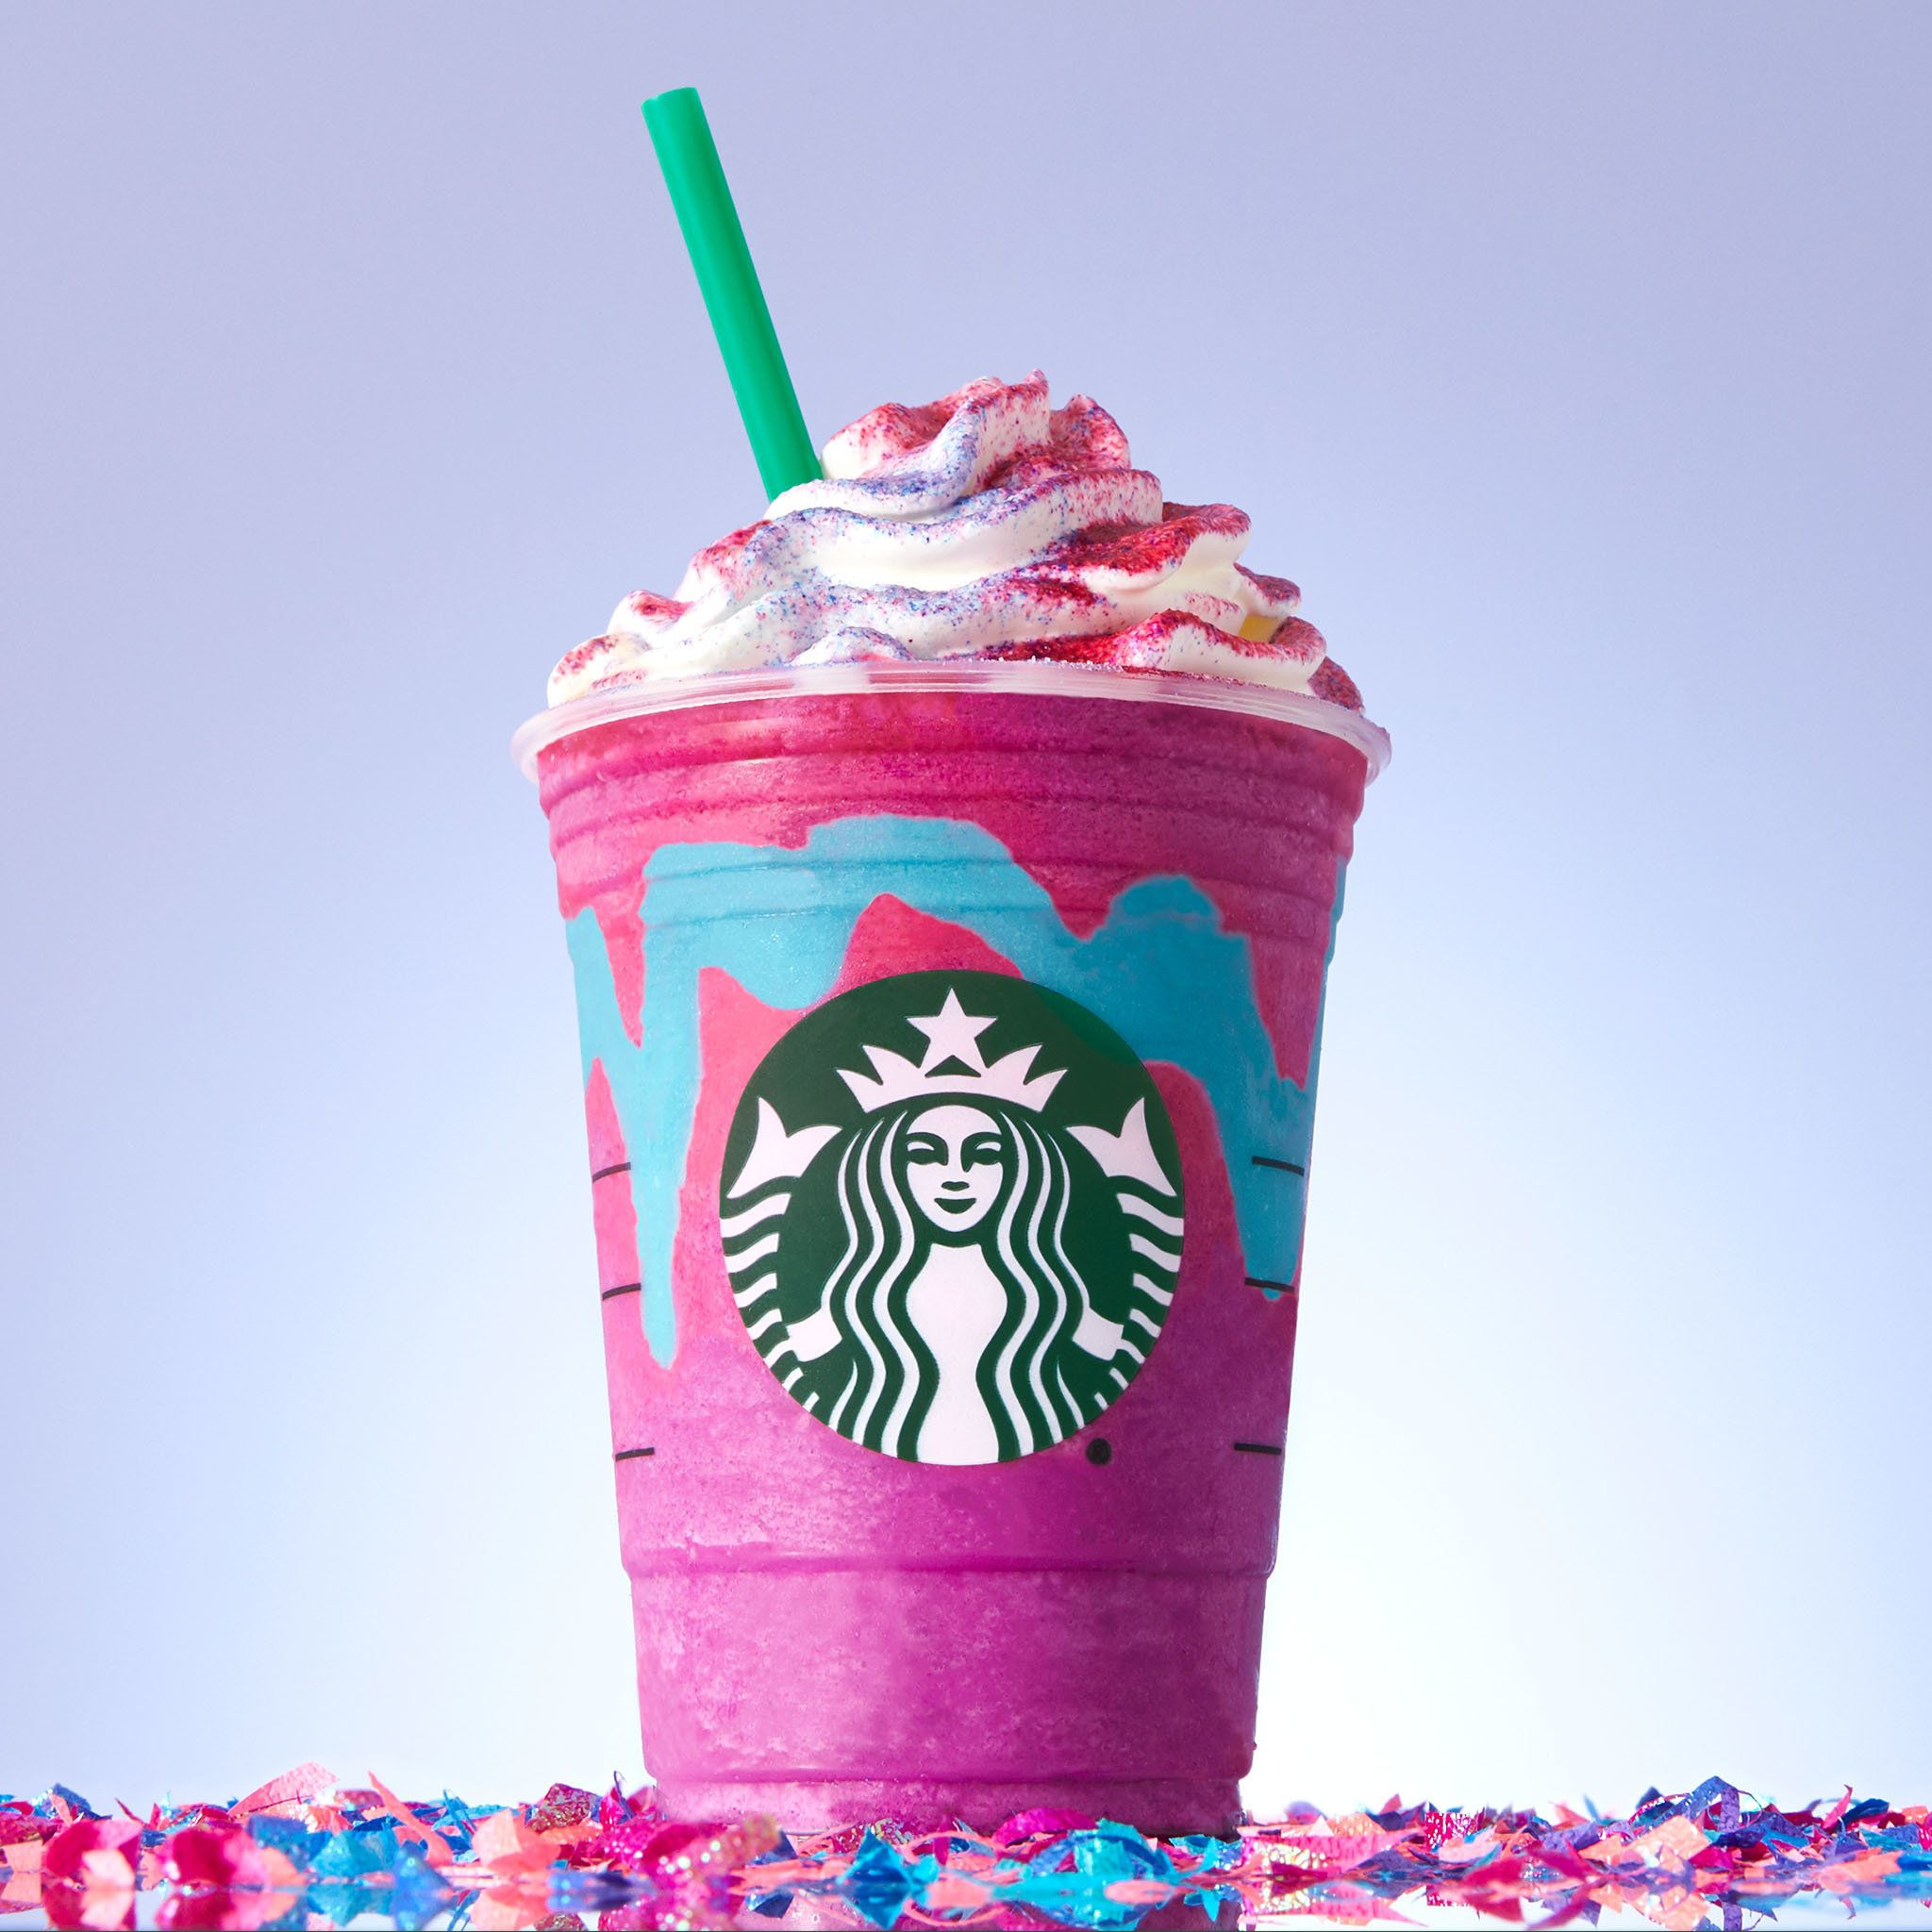 A beverage neither for nor of unicorns, but still a unicorn frappuccino.